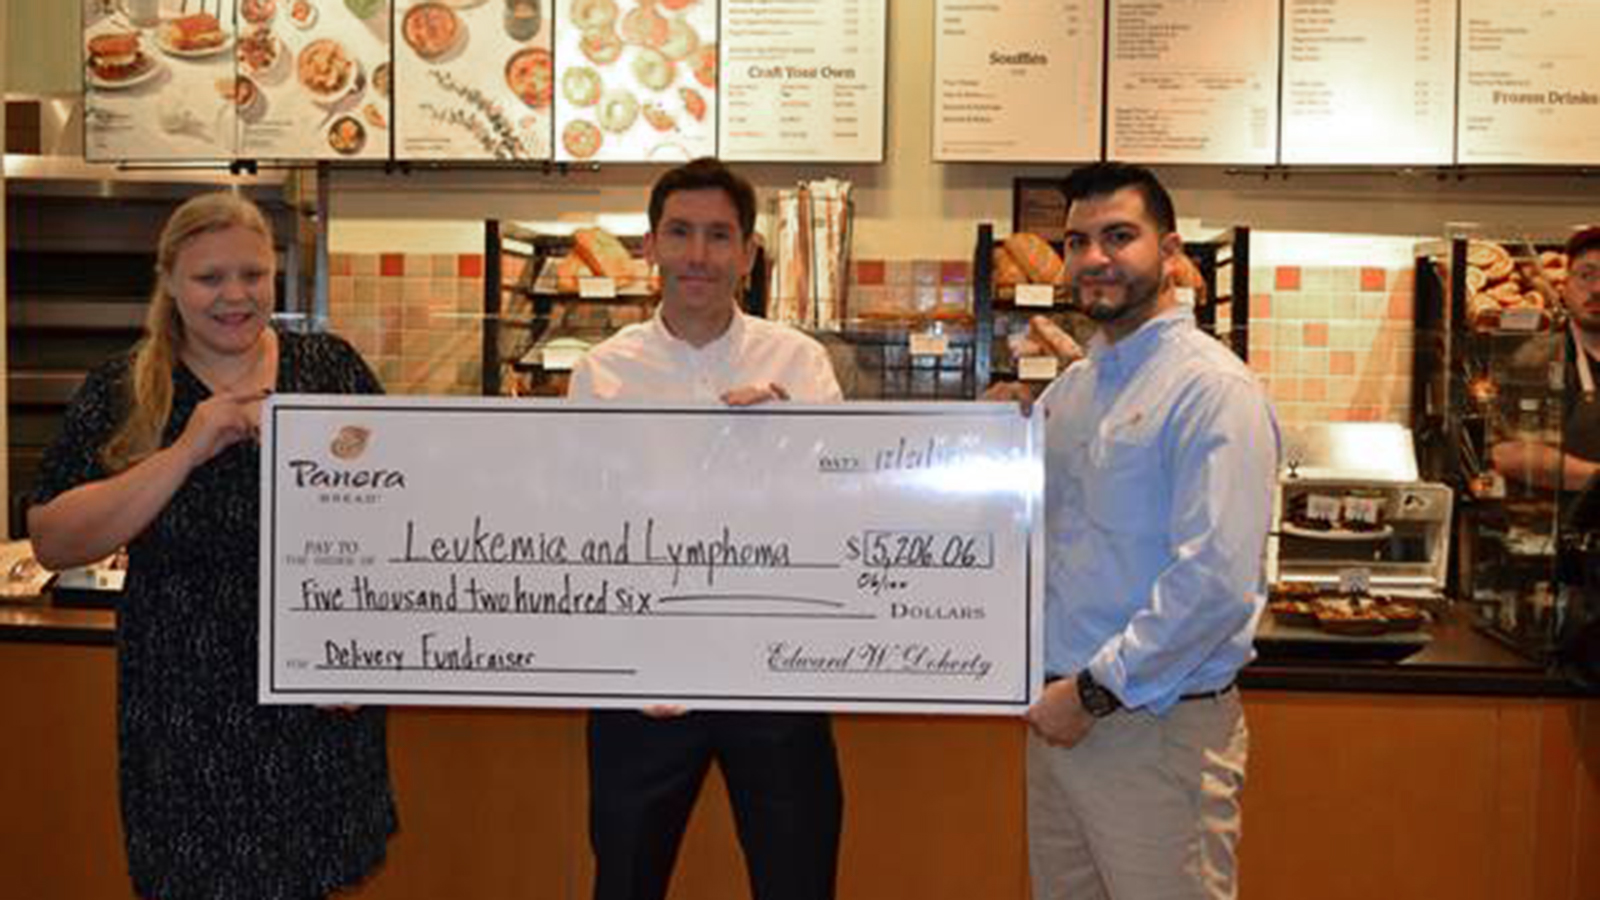 Panera Bread raises over $5,000 for Leukemia and Lymphoma Society